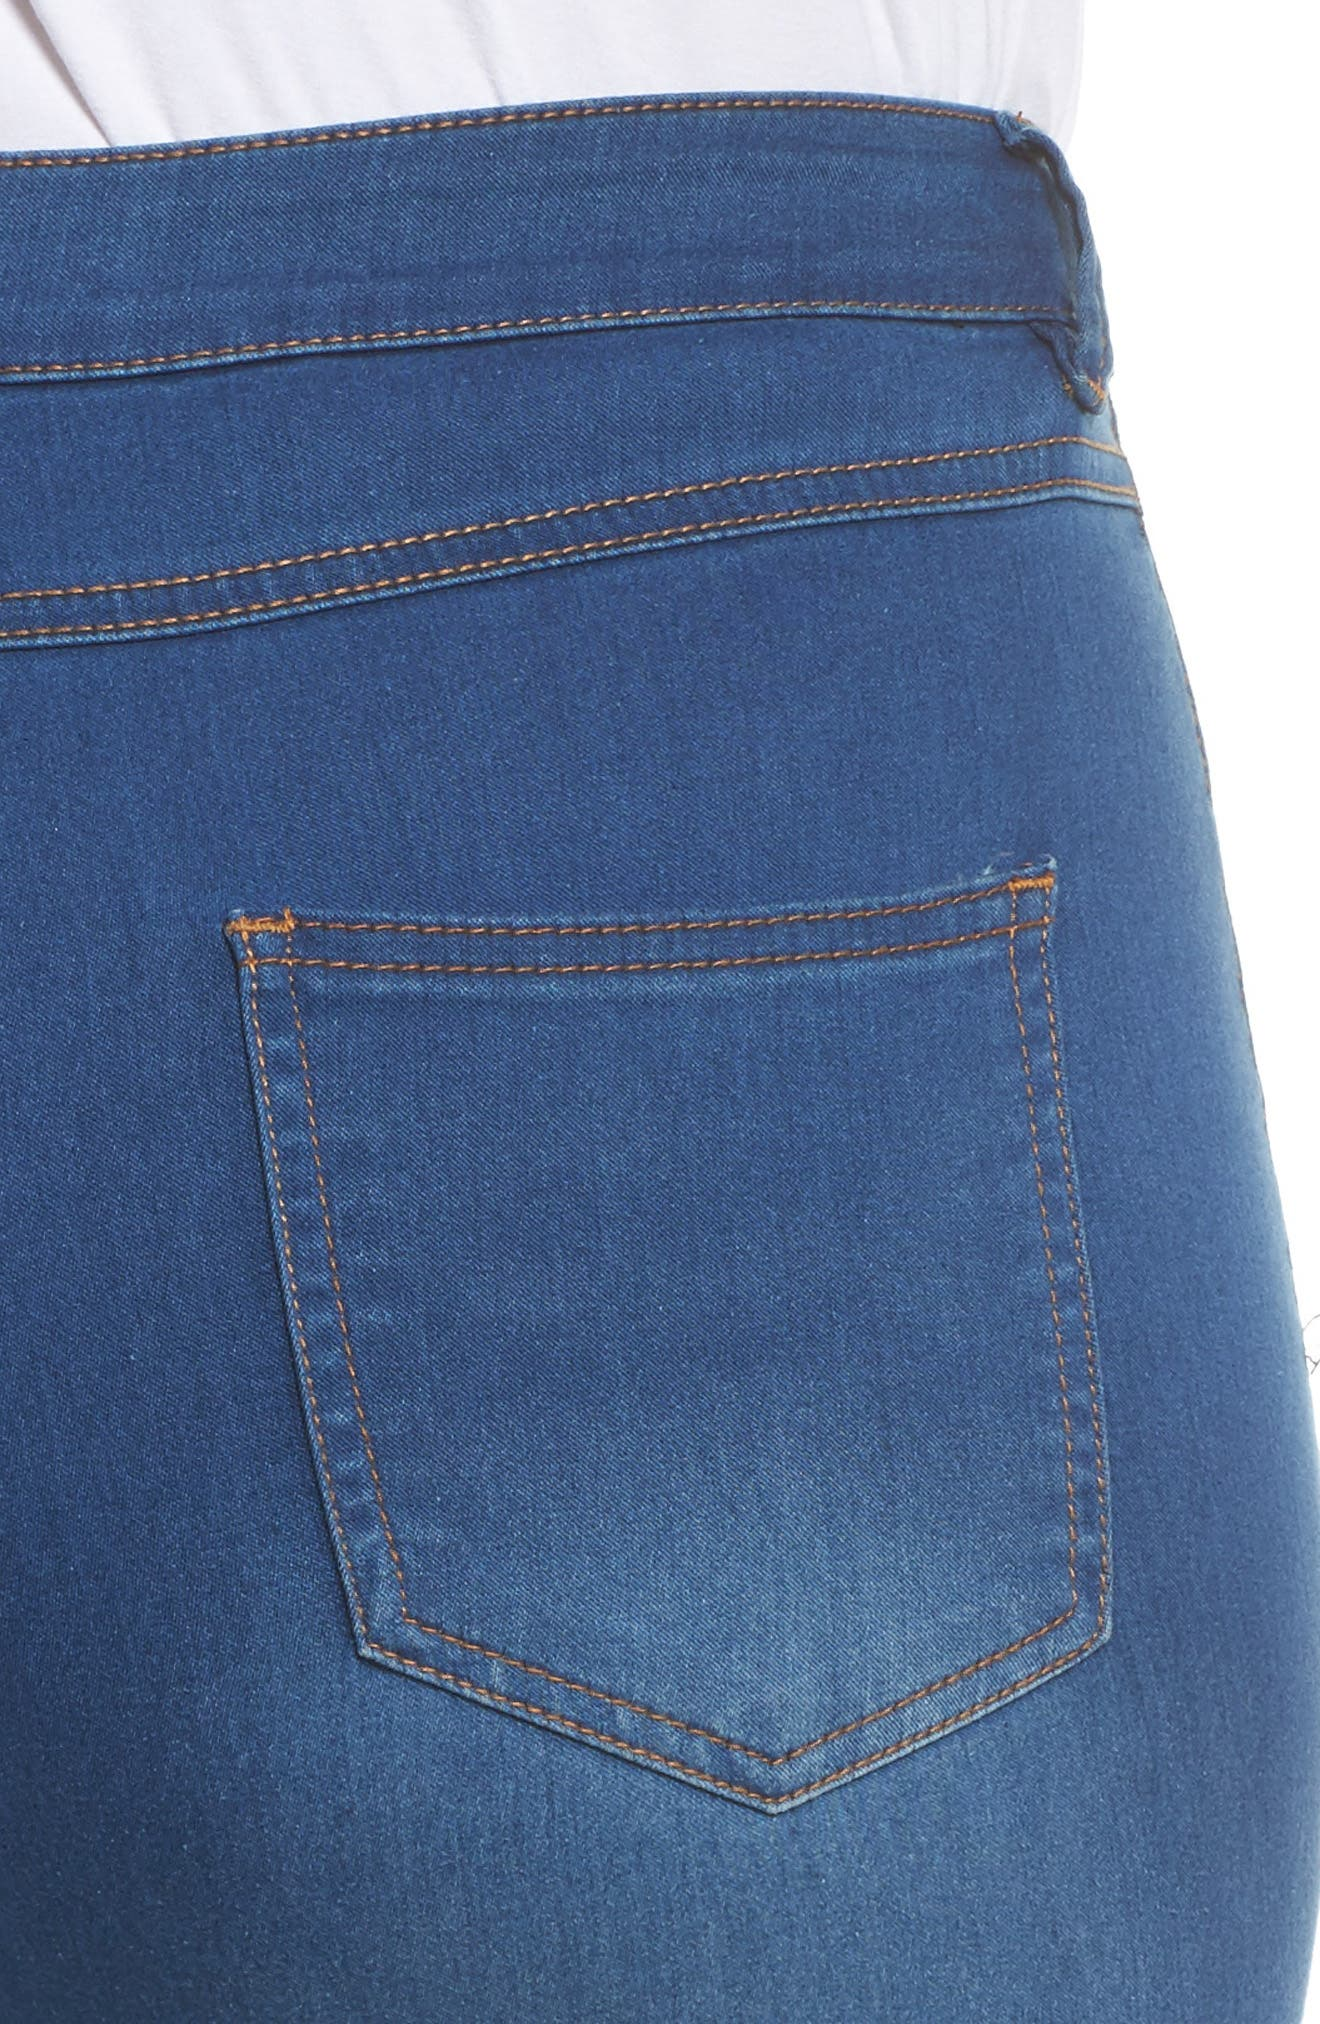 Alternate Image 4  - Evans Skinny Stretch Jeans (Mid Wash) (Plus Size)